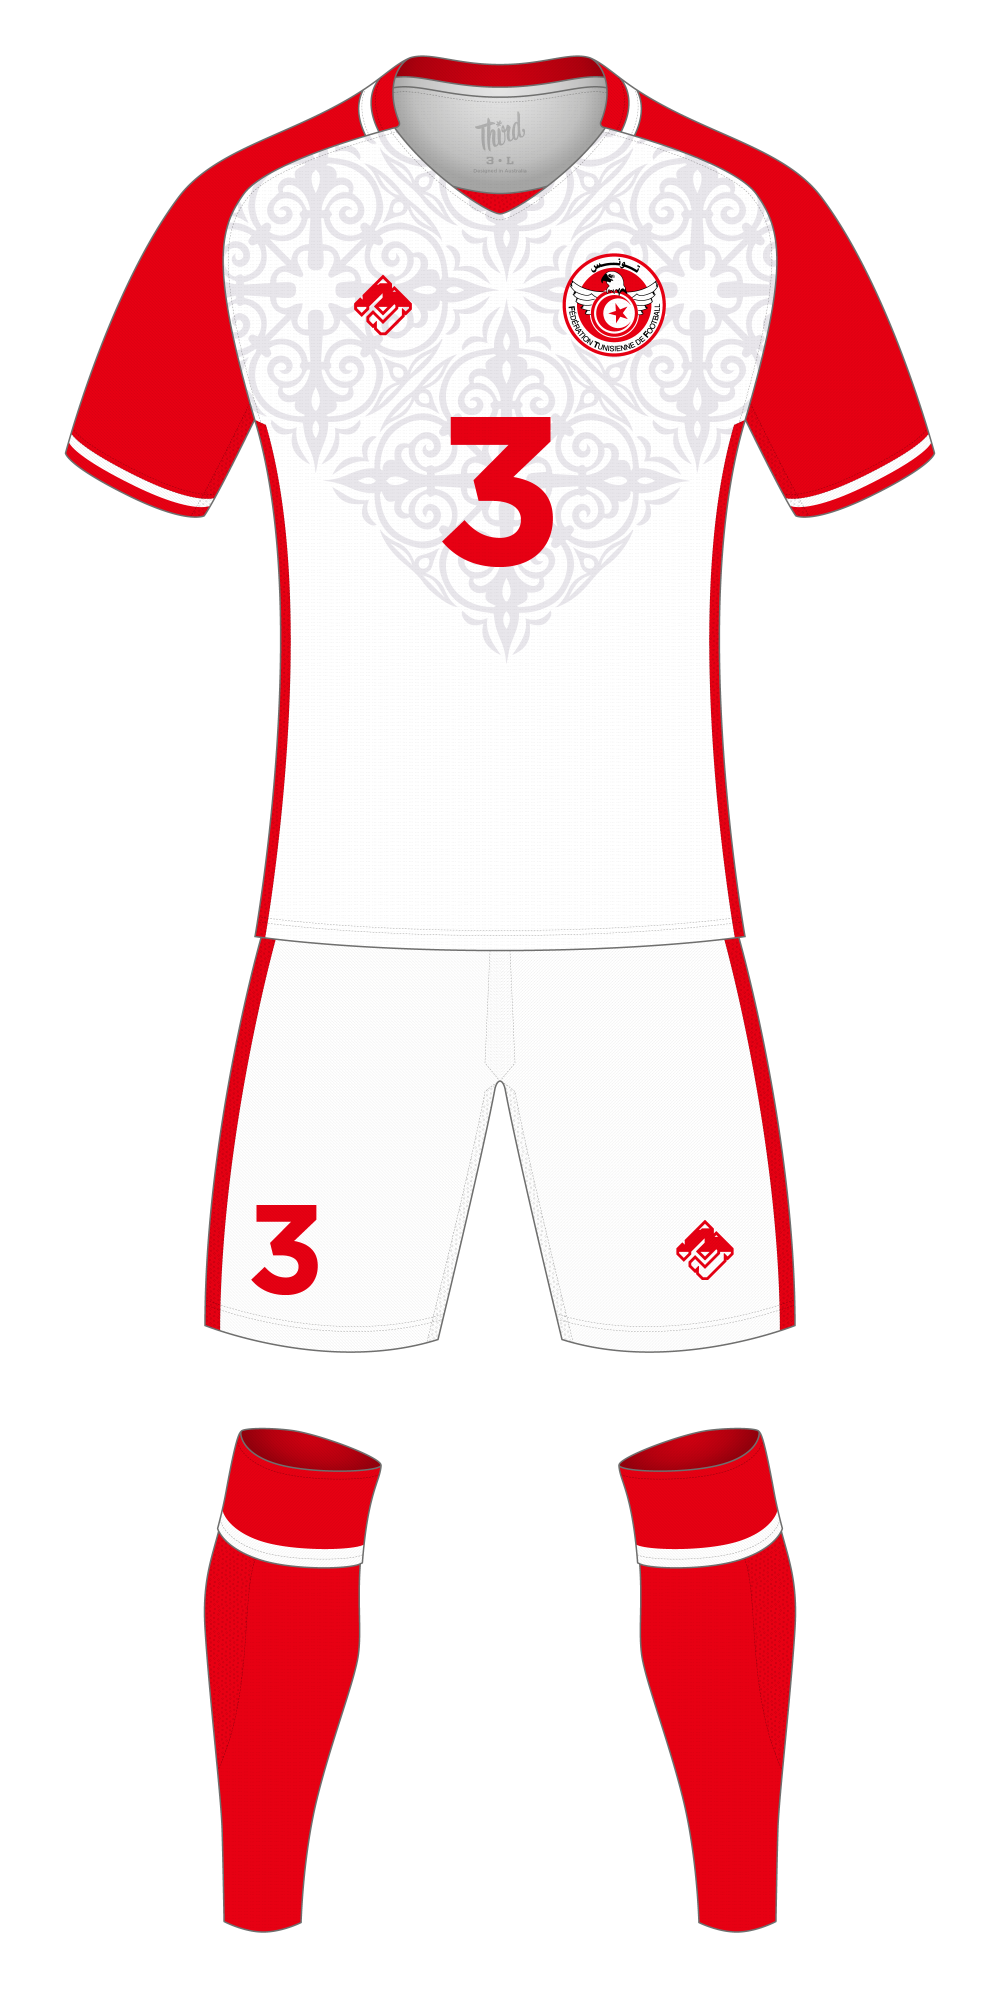 Tunisia World Cup 2018 concept